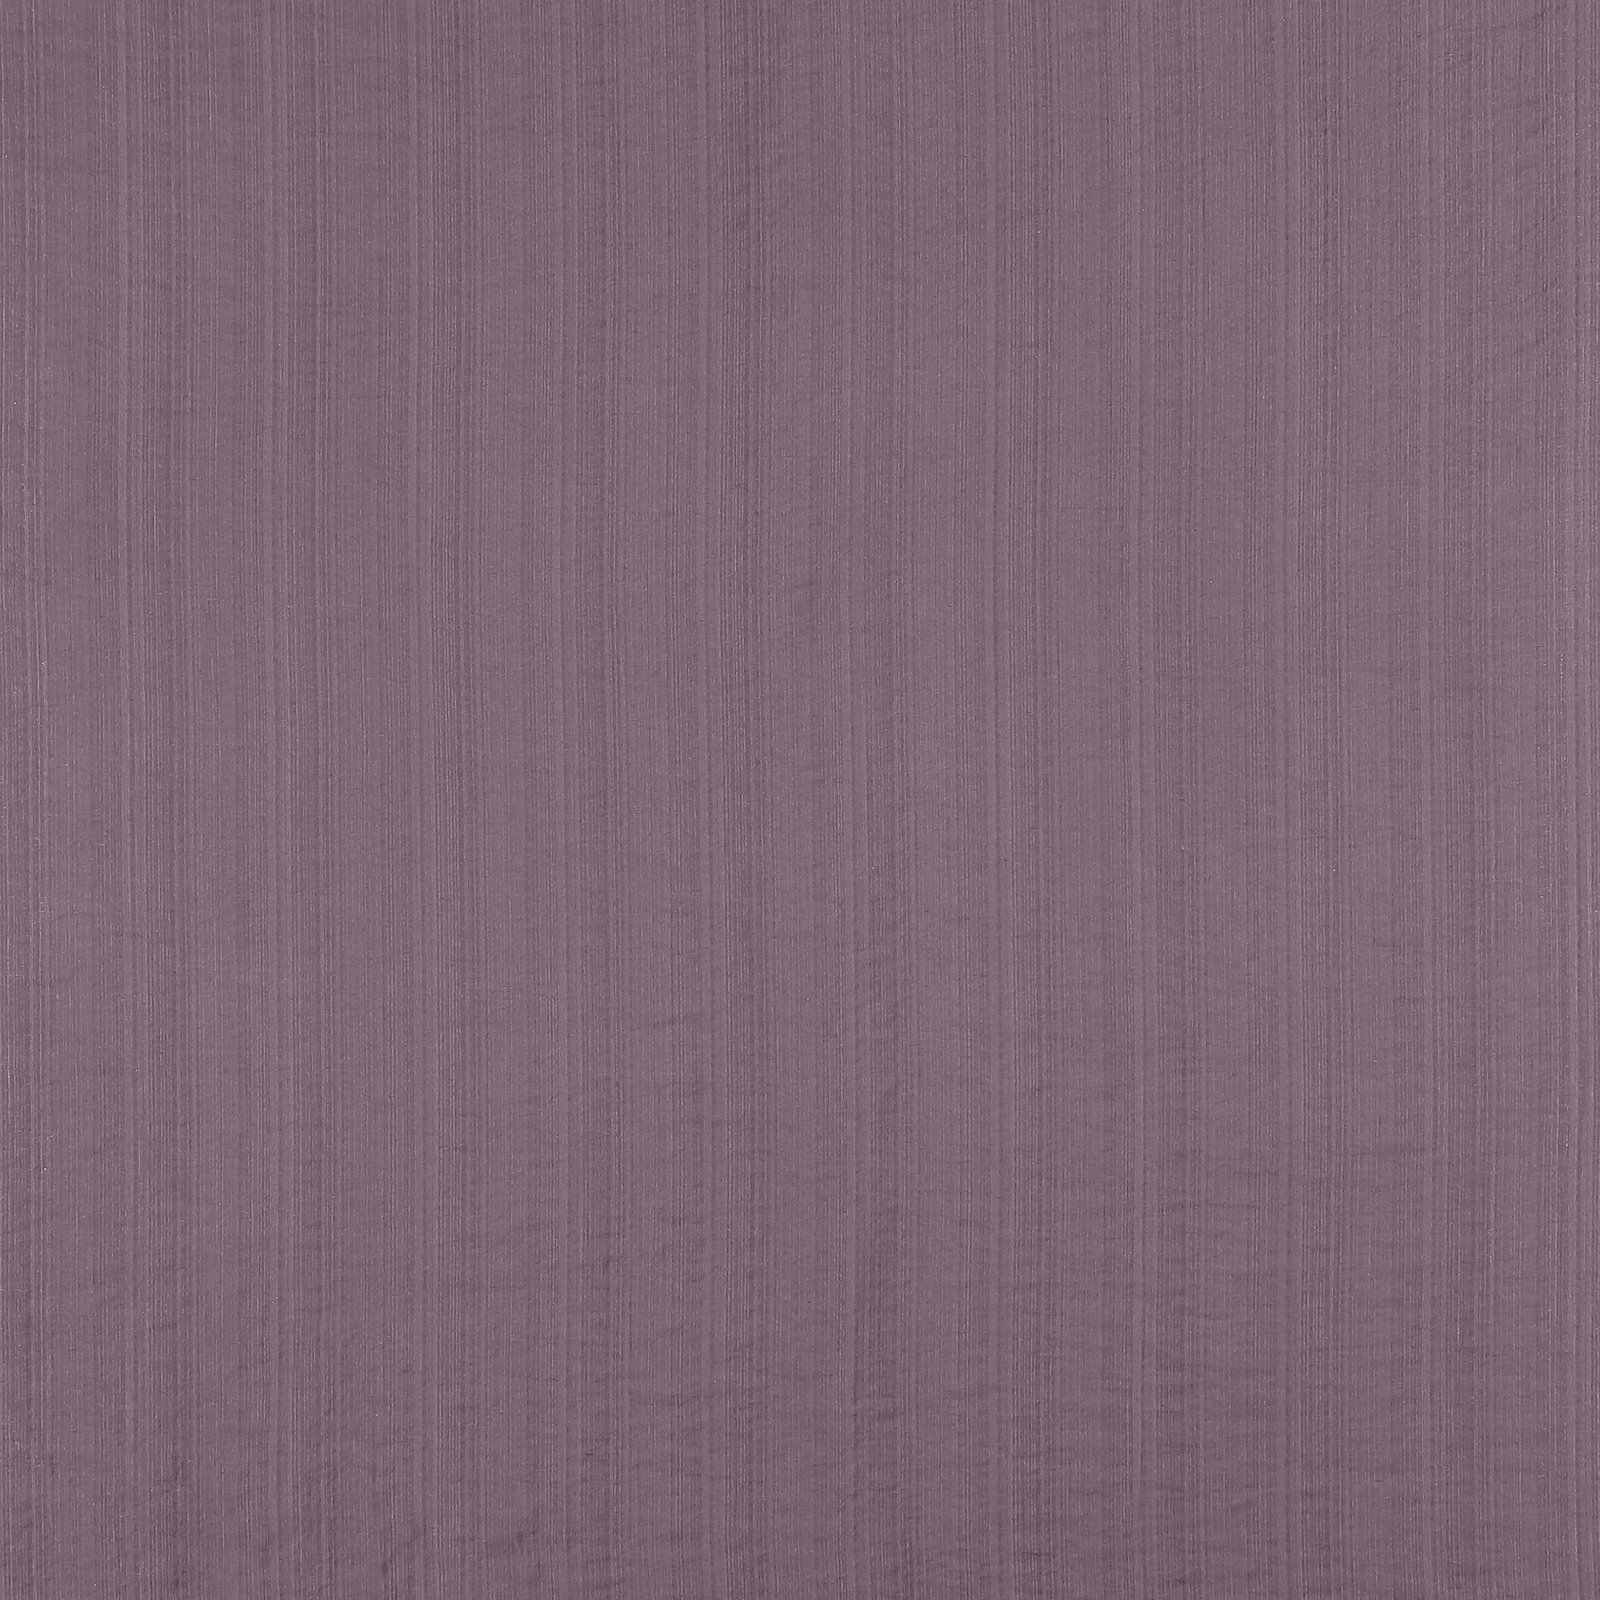 Woven viscose w structure dusty purple 701091_pack_solid